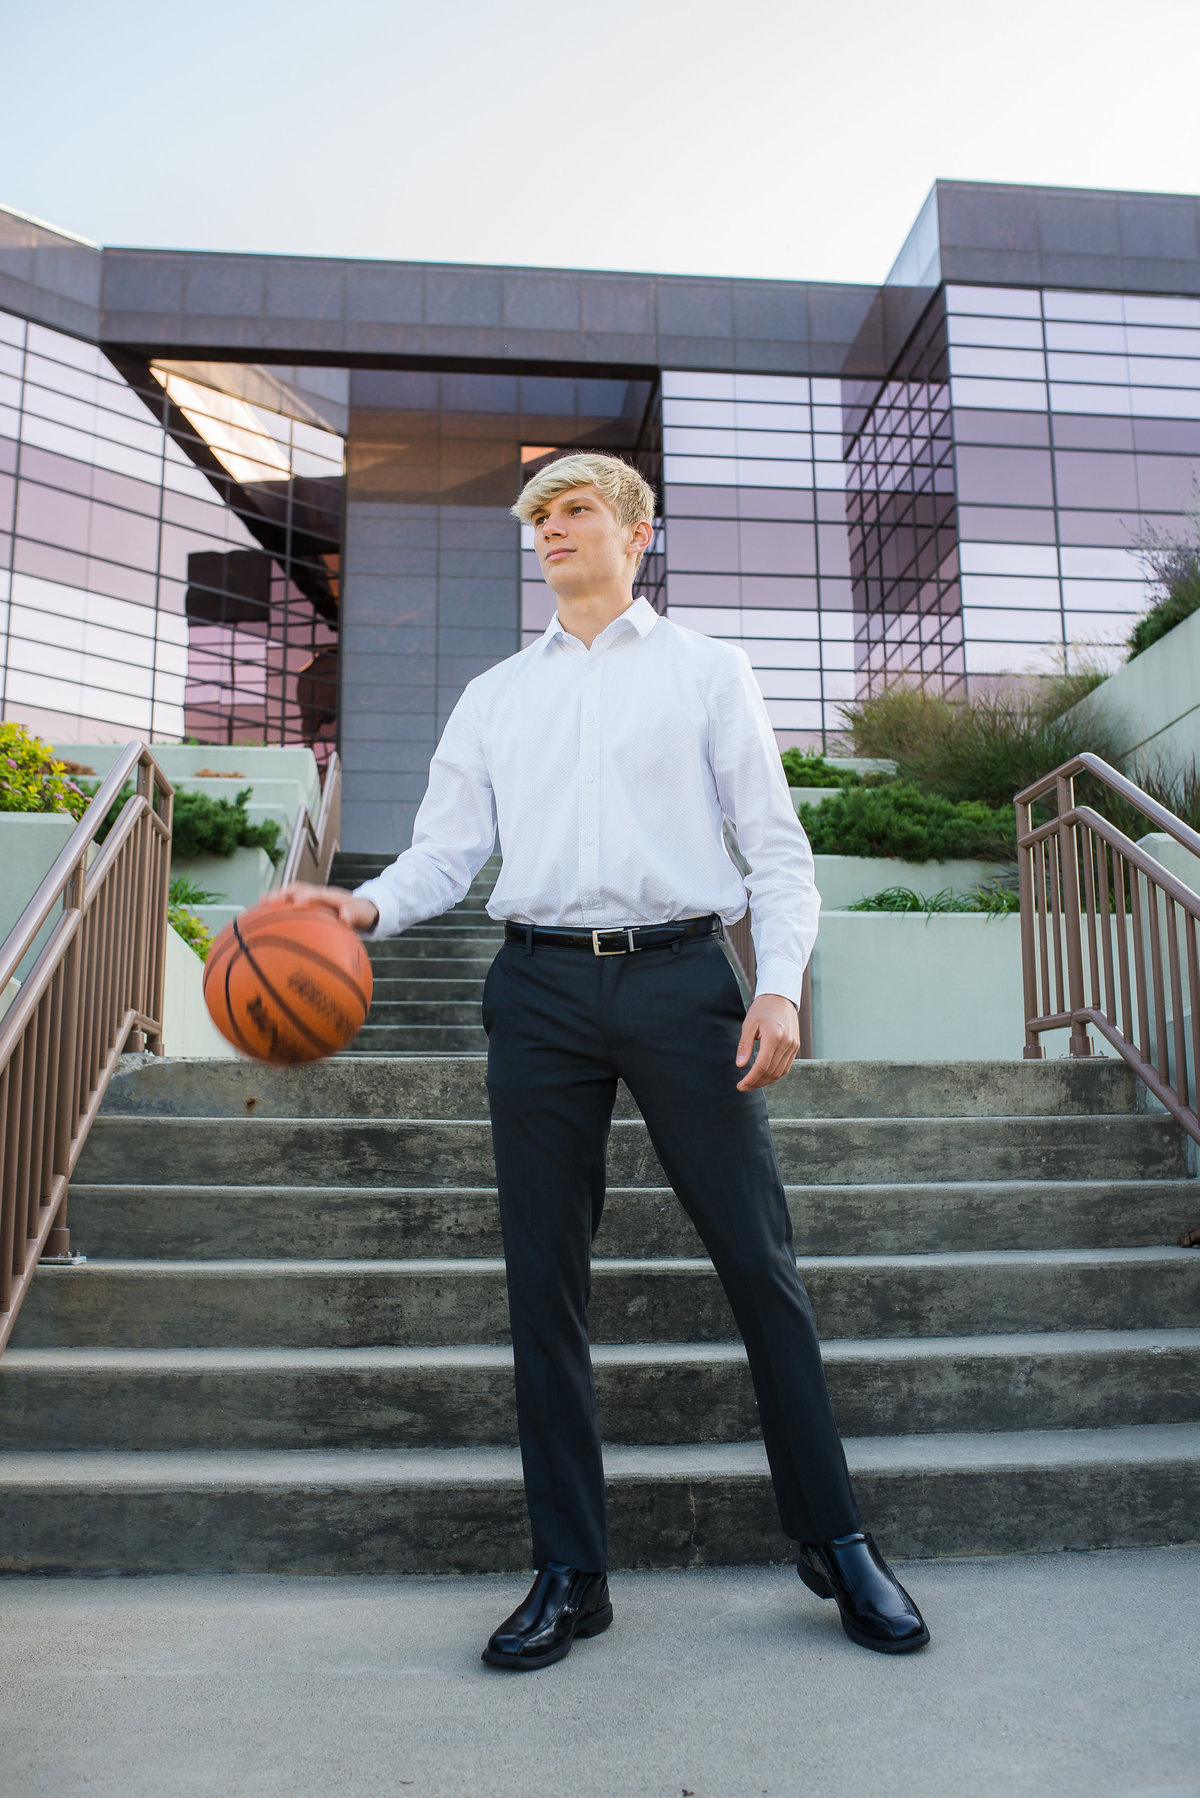 Senior Session Guy in suite and tie with basketball in city